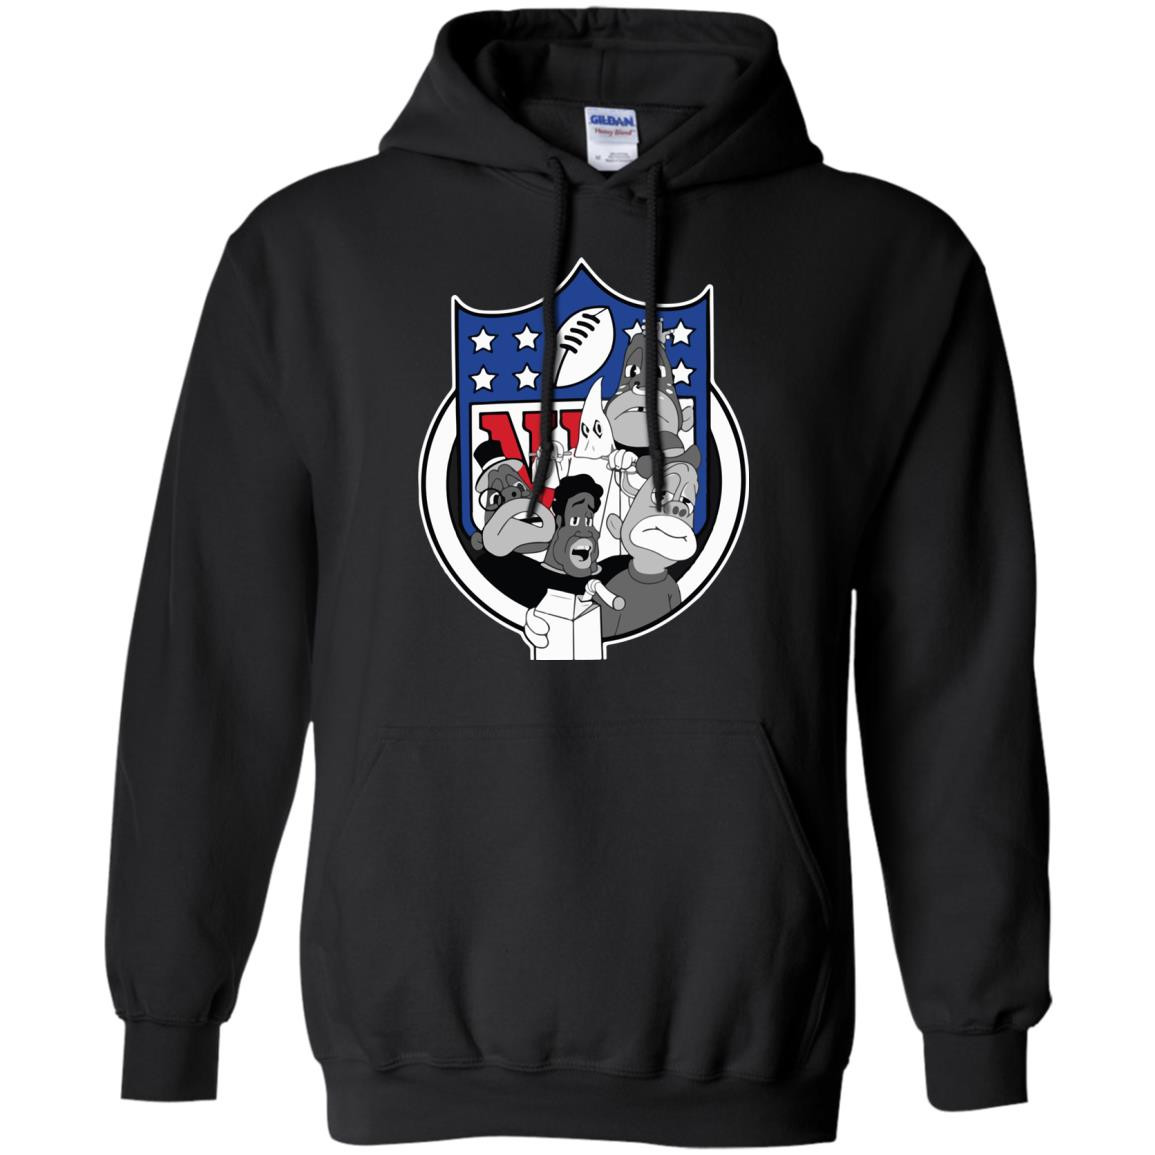 image 1490 - Snoop Dog The Story of O.J NFL shirt & sweatshirt